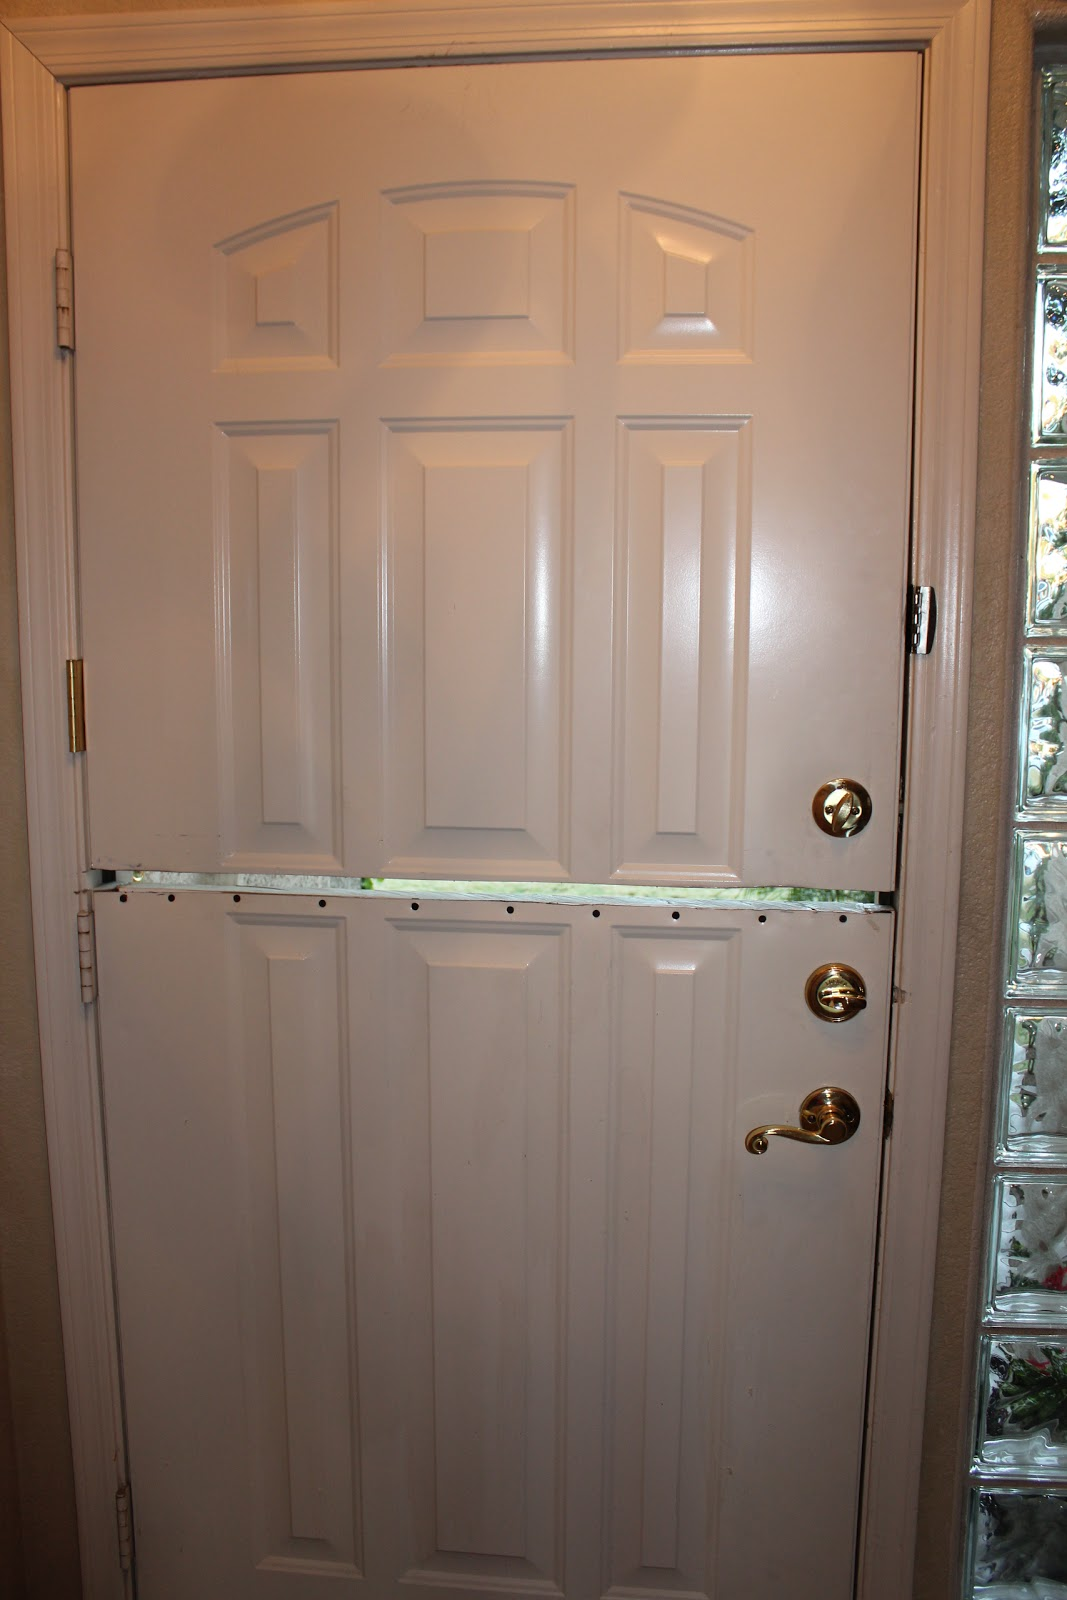 How to Make a Dutch Door & gardenview cottage: How to Make a Dutch Door Pezcame.Com